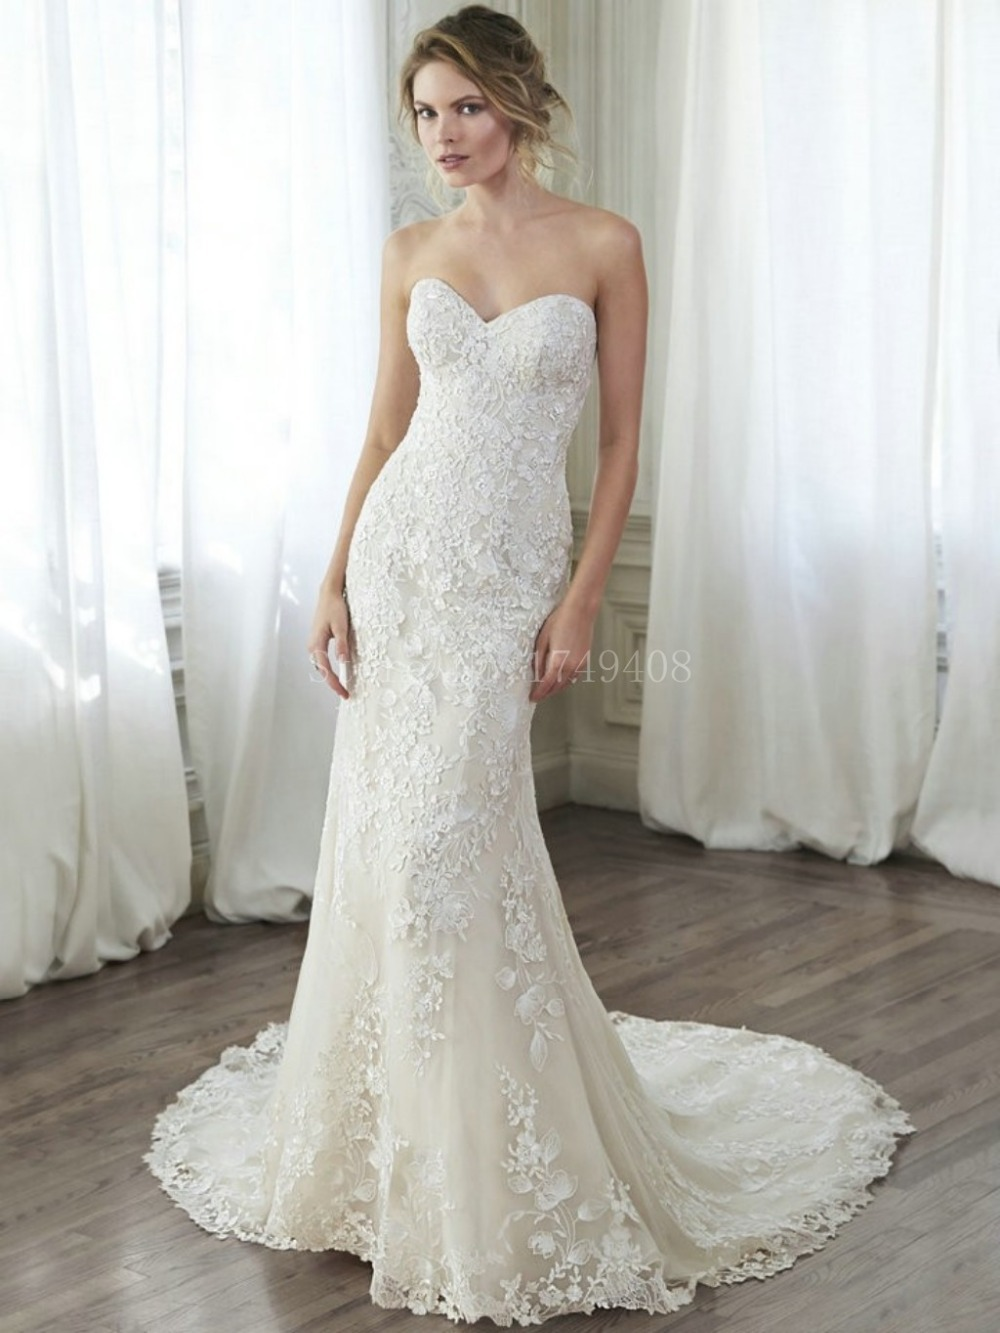 Wedding Sexy Wedding Dresses Images online get cheap sexy wedding dress aliexpress com alibaba group hot selling vintage lace sheath 2015 dresses robe de mariage party